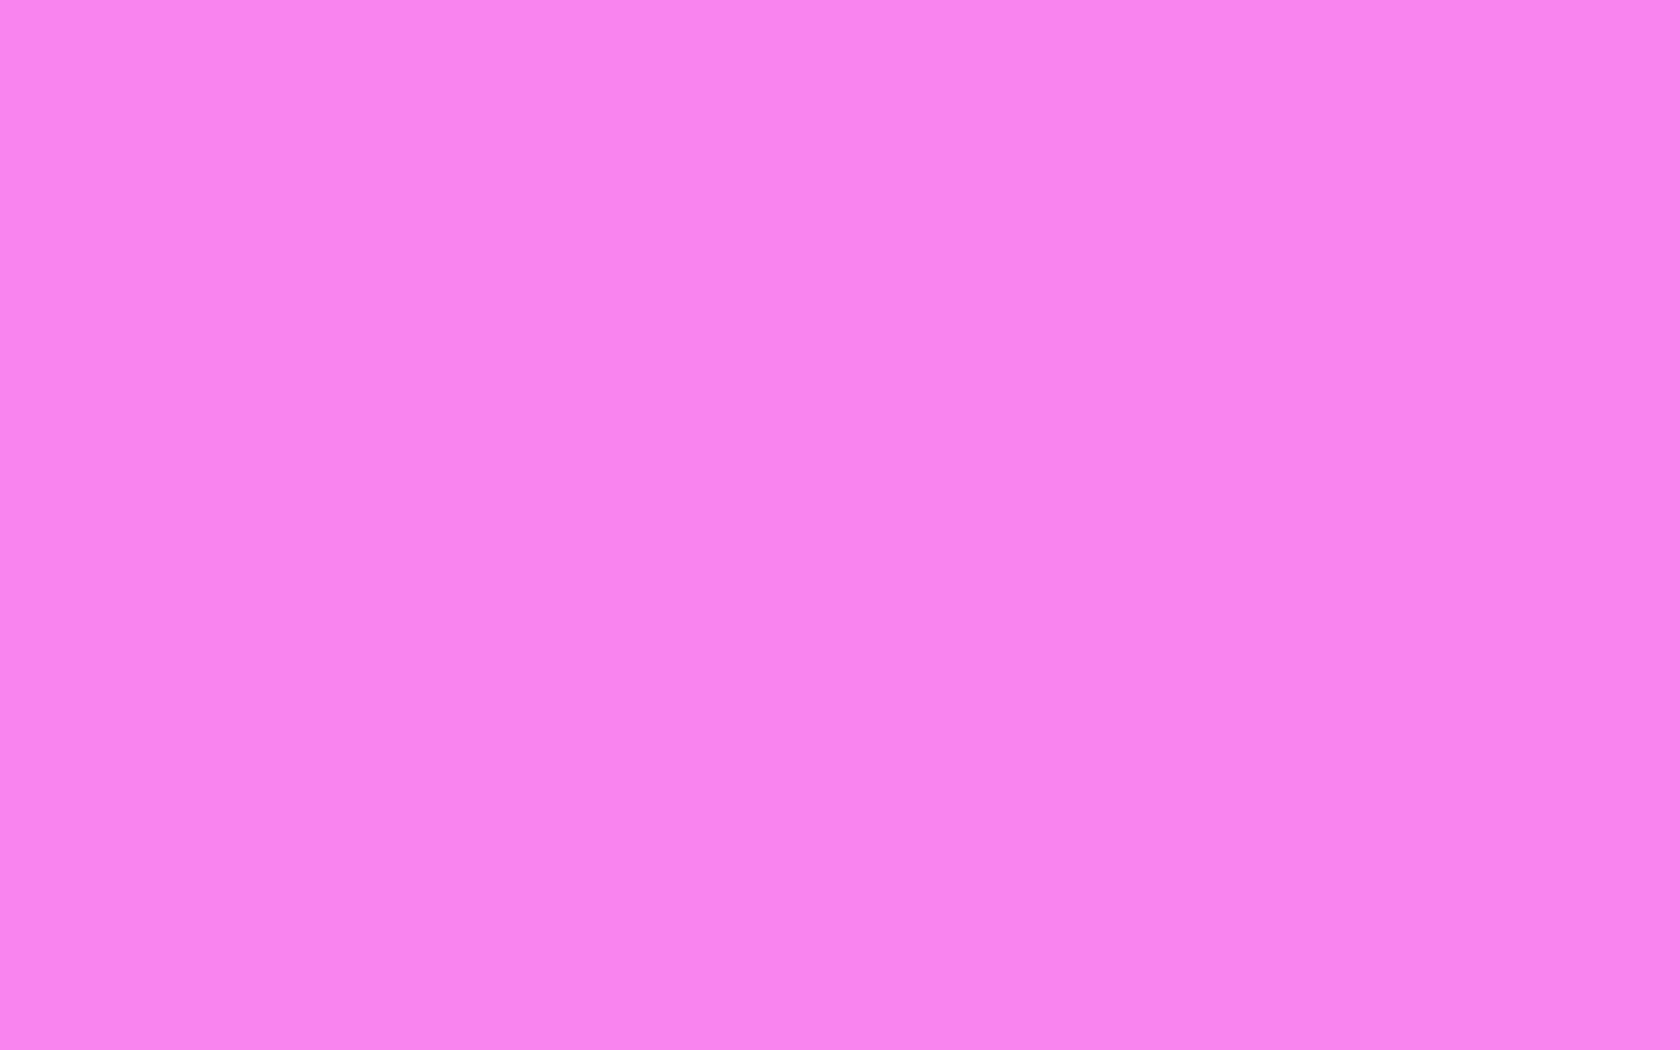 1680x1050 Light Fuchsia Pink Solid Color Background